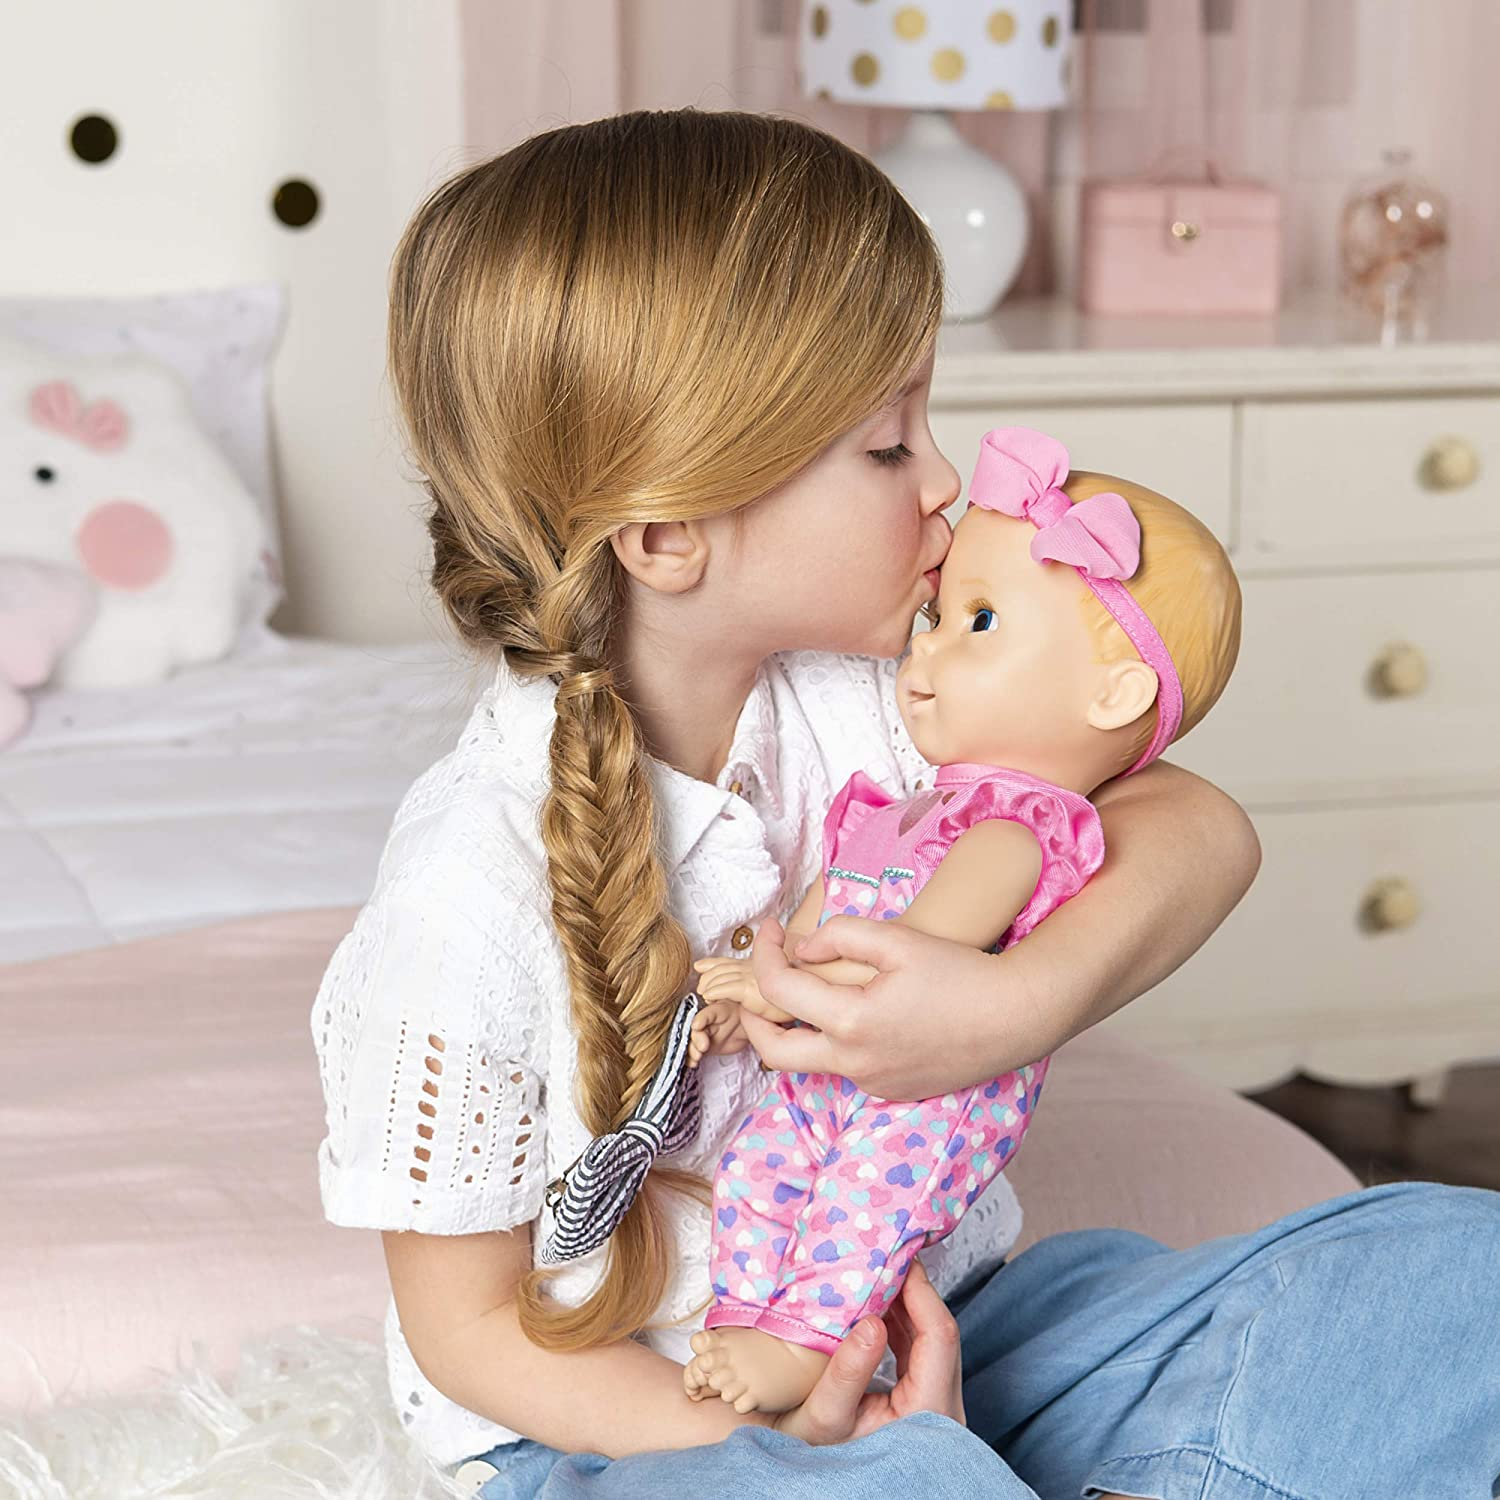 Blonde Hair Interactive Baby Doll with Real Expressions /& Movement Luvabella Newborn